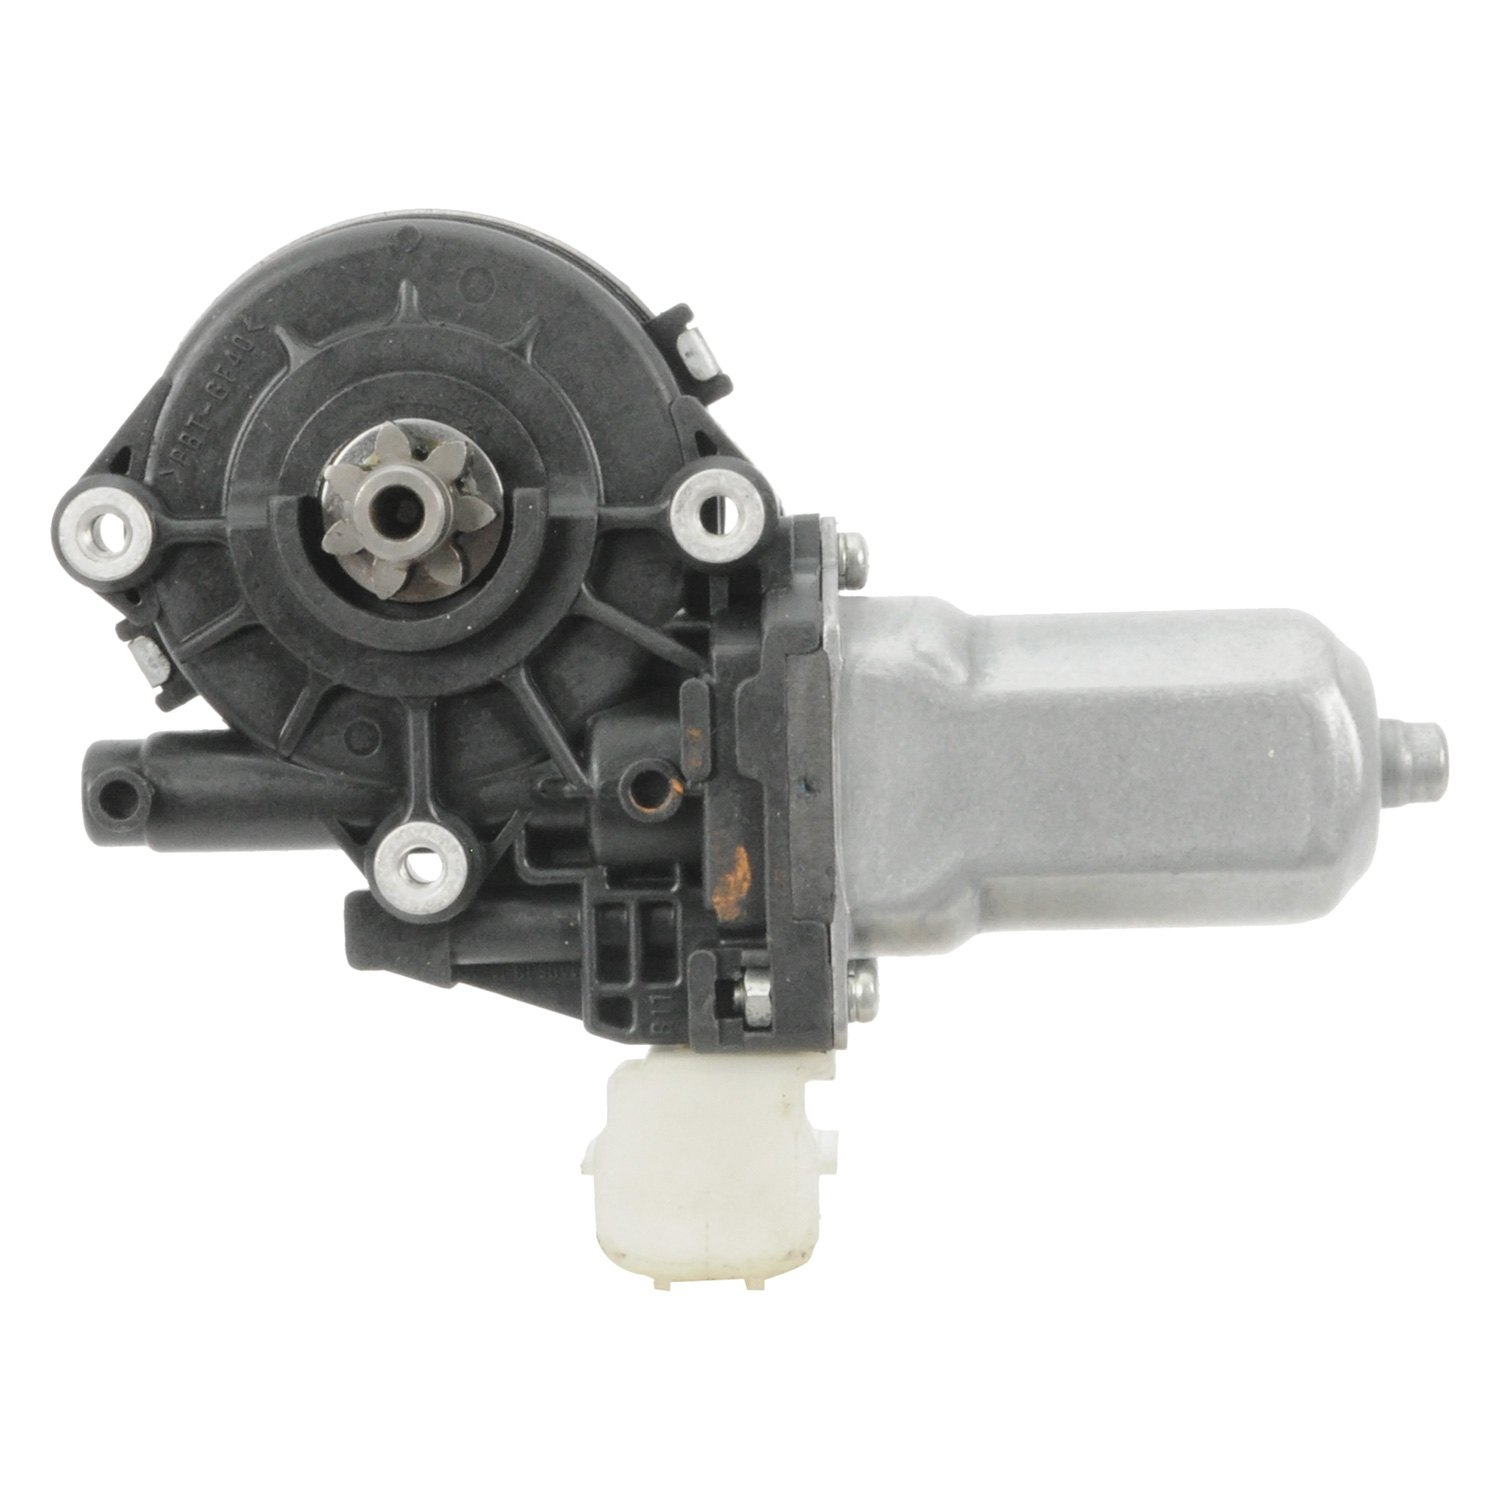 A1 cardone nissan murano 2009 2010 remanufactured power for Nissan versa window motor replacement